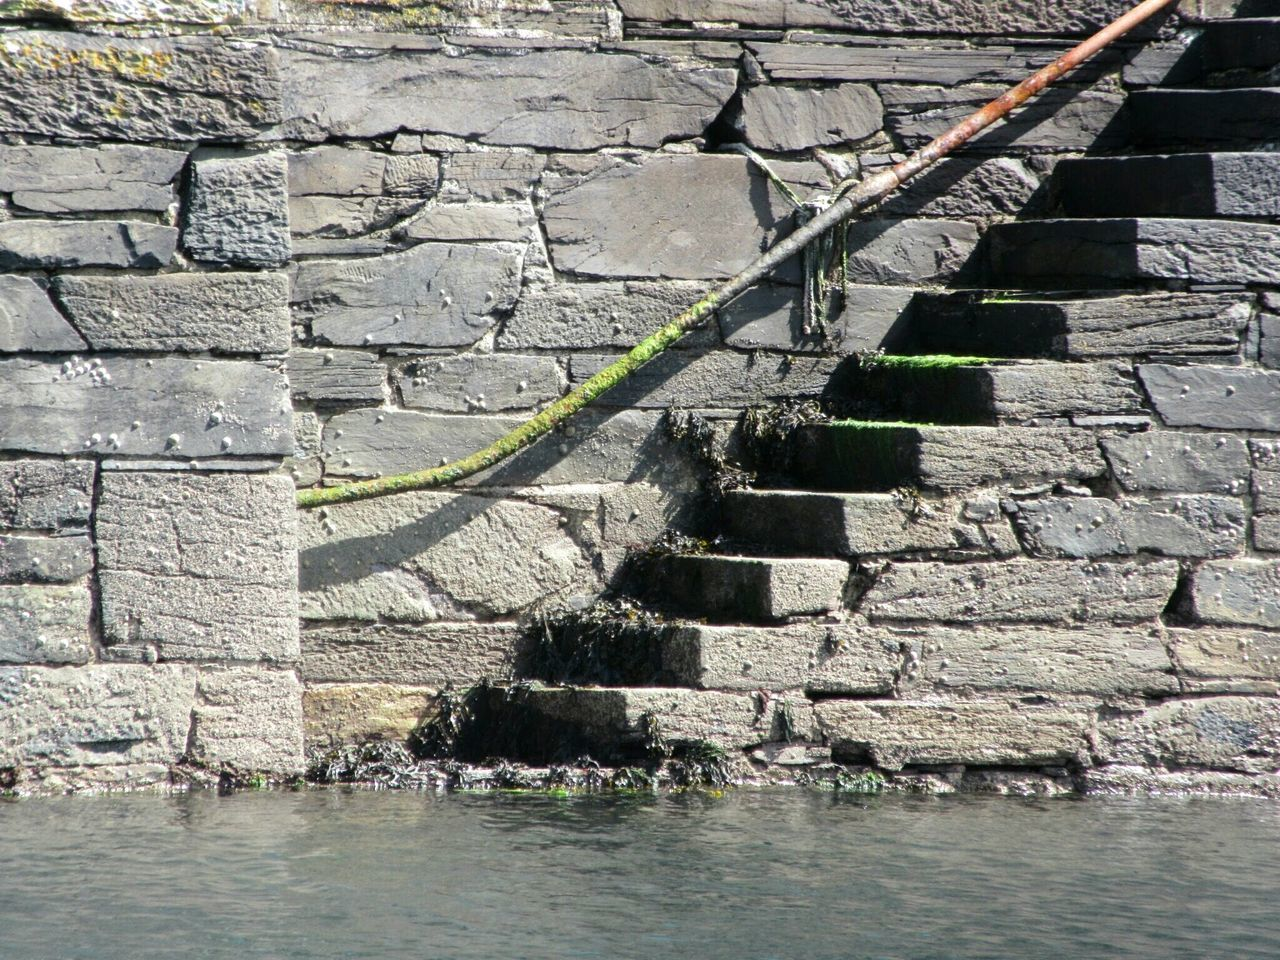 Quayside steps Quayside Quaywall Quay Steps Stone Wall Seaweed Barnicles Limpet Low Tide Cape Clear Island Roaringwater Bay West Cork Wildatlanticway Ireland